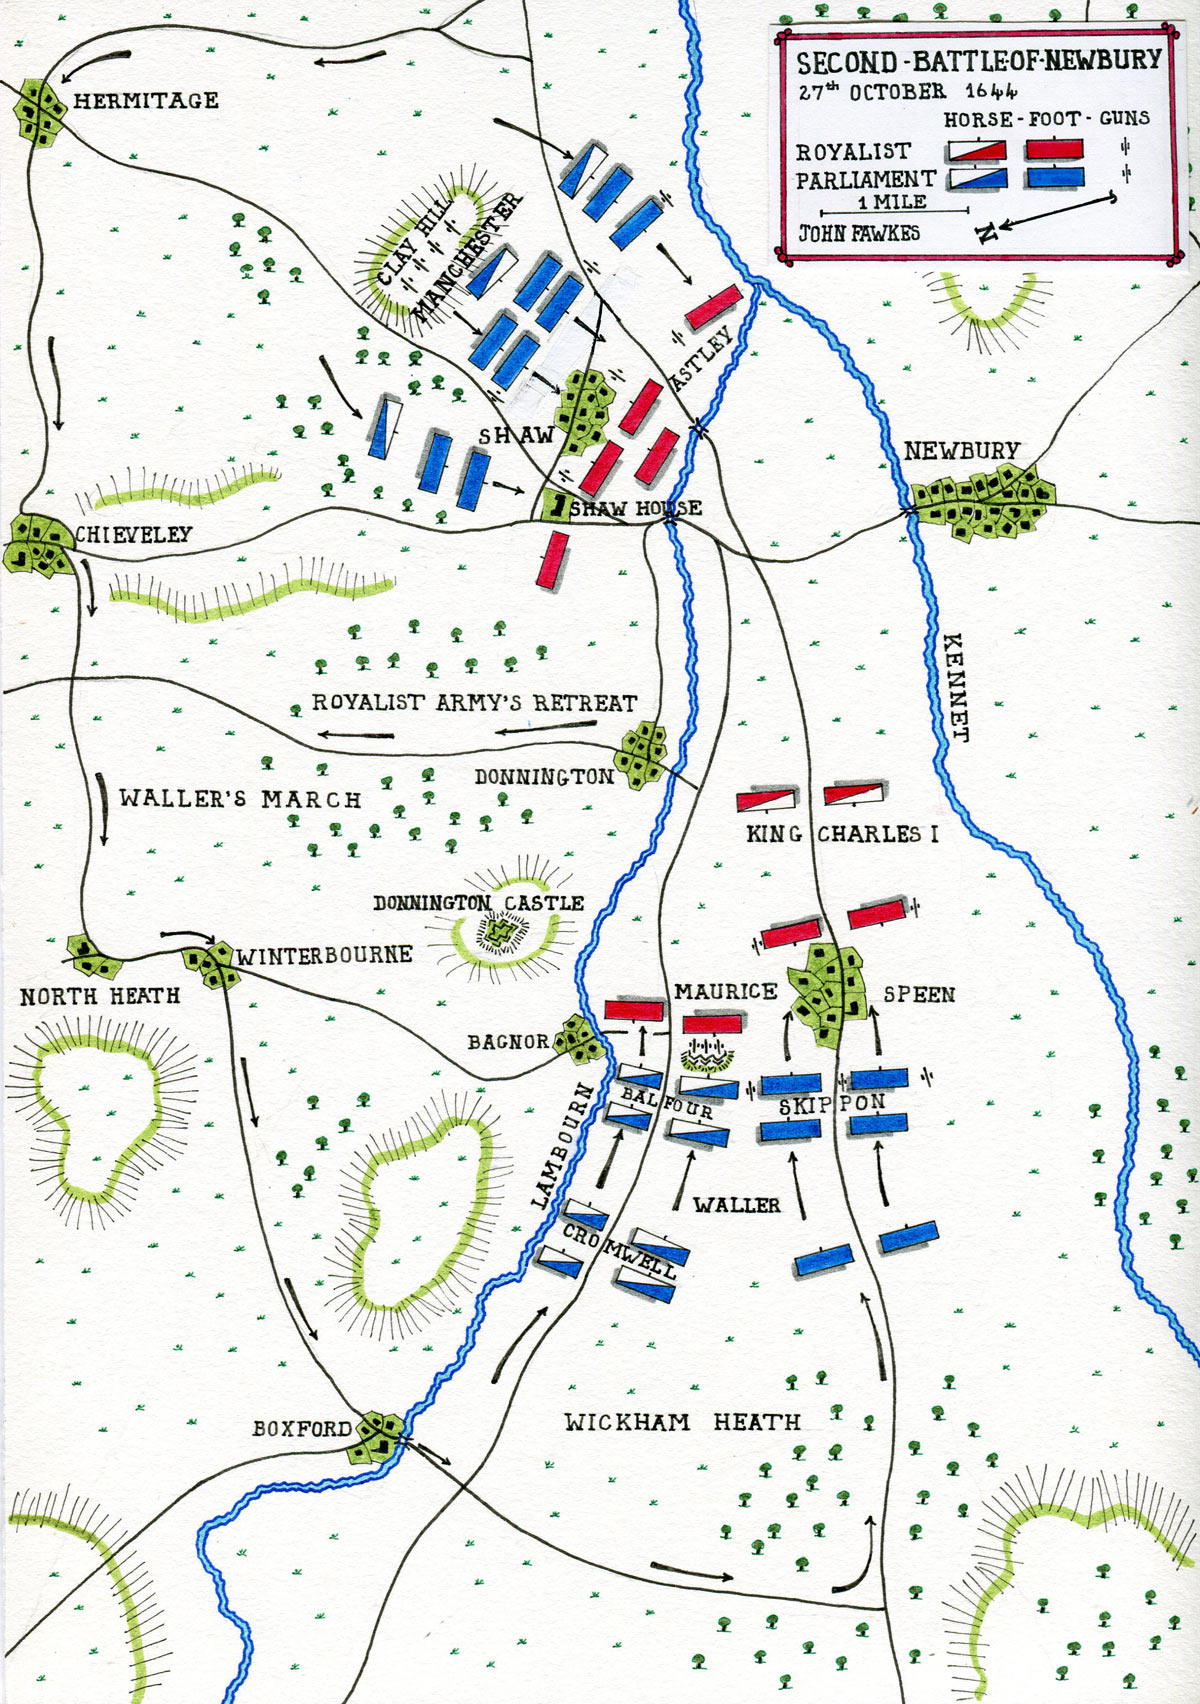 Map of the Second Battle of Newbury 27th October 1644 during the English Civil War: map by John Fawkes